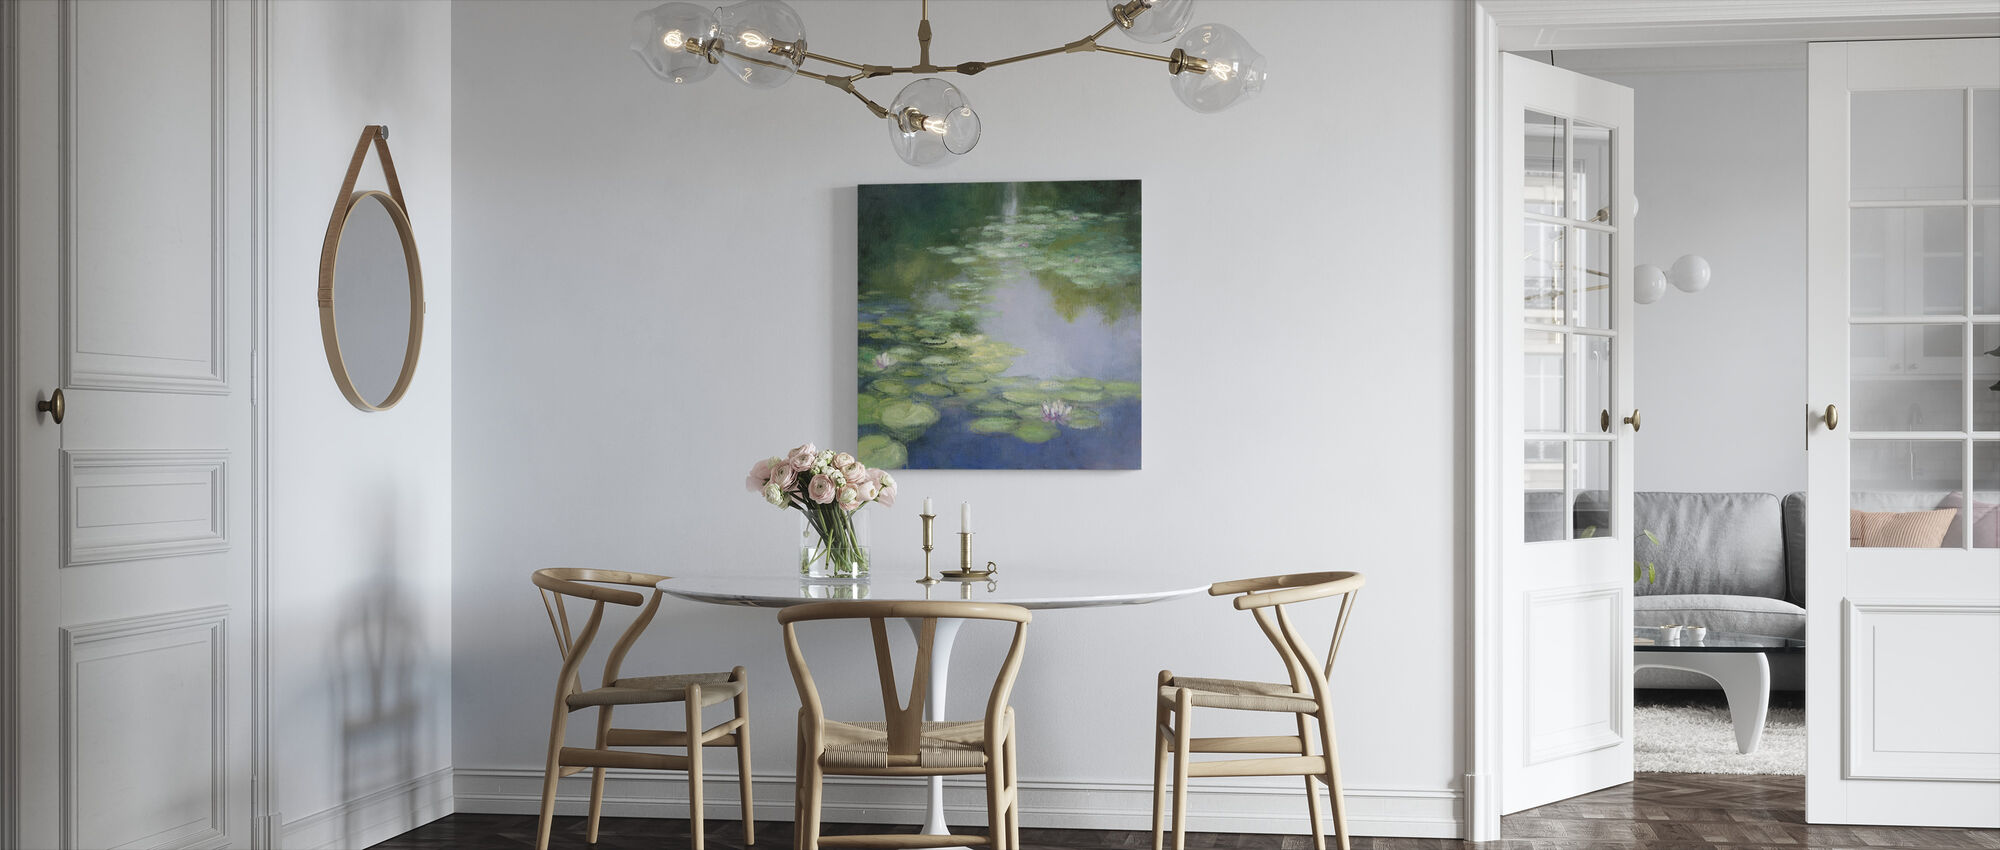 Blue Lily I - Canvas print - Kitchen